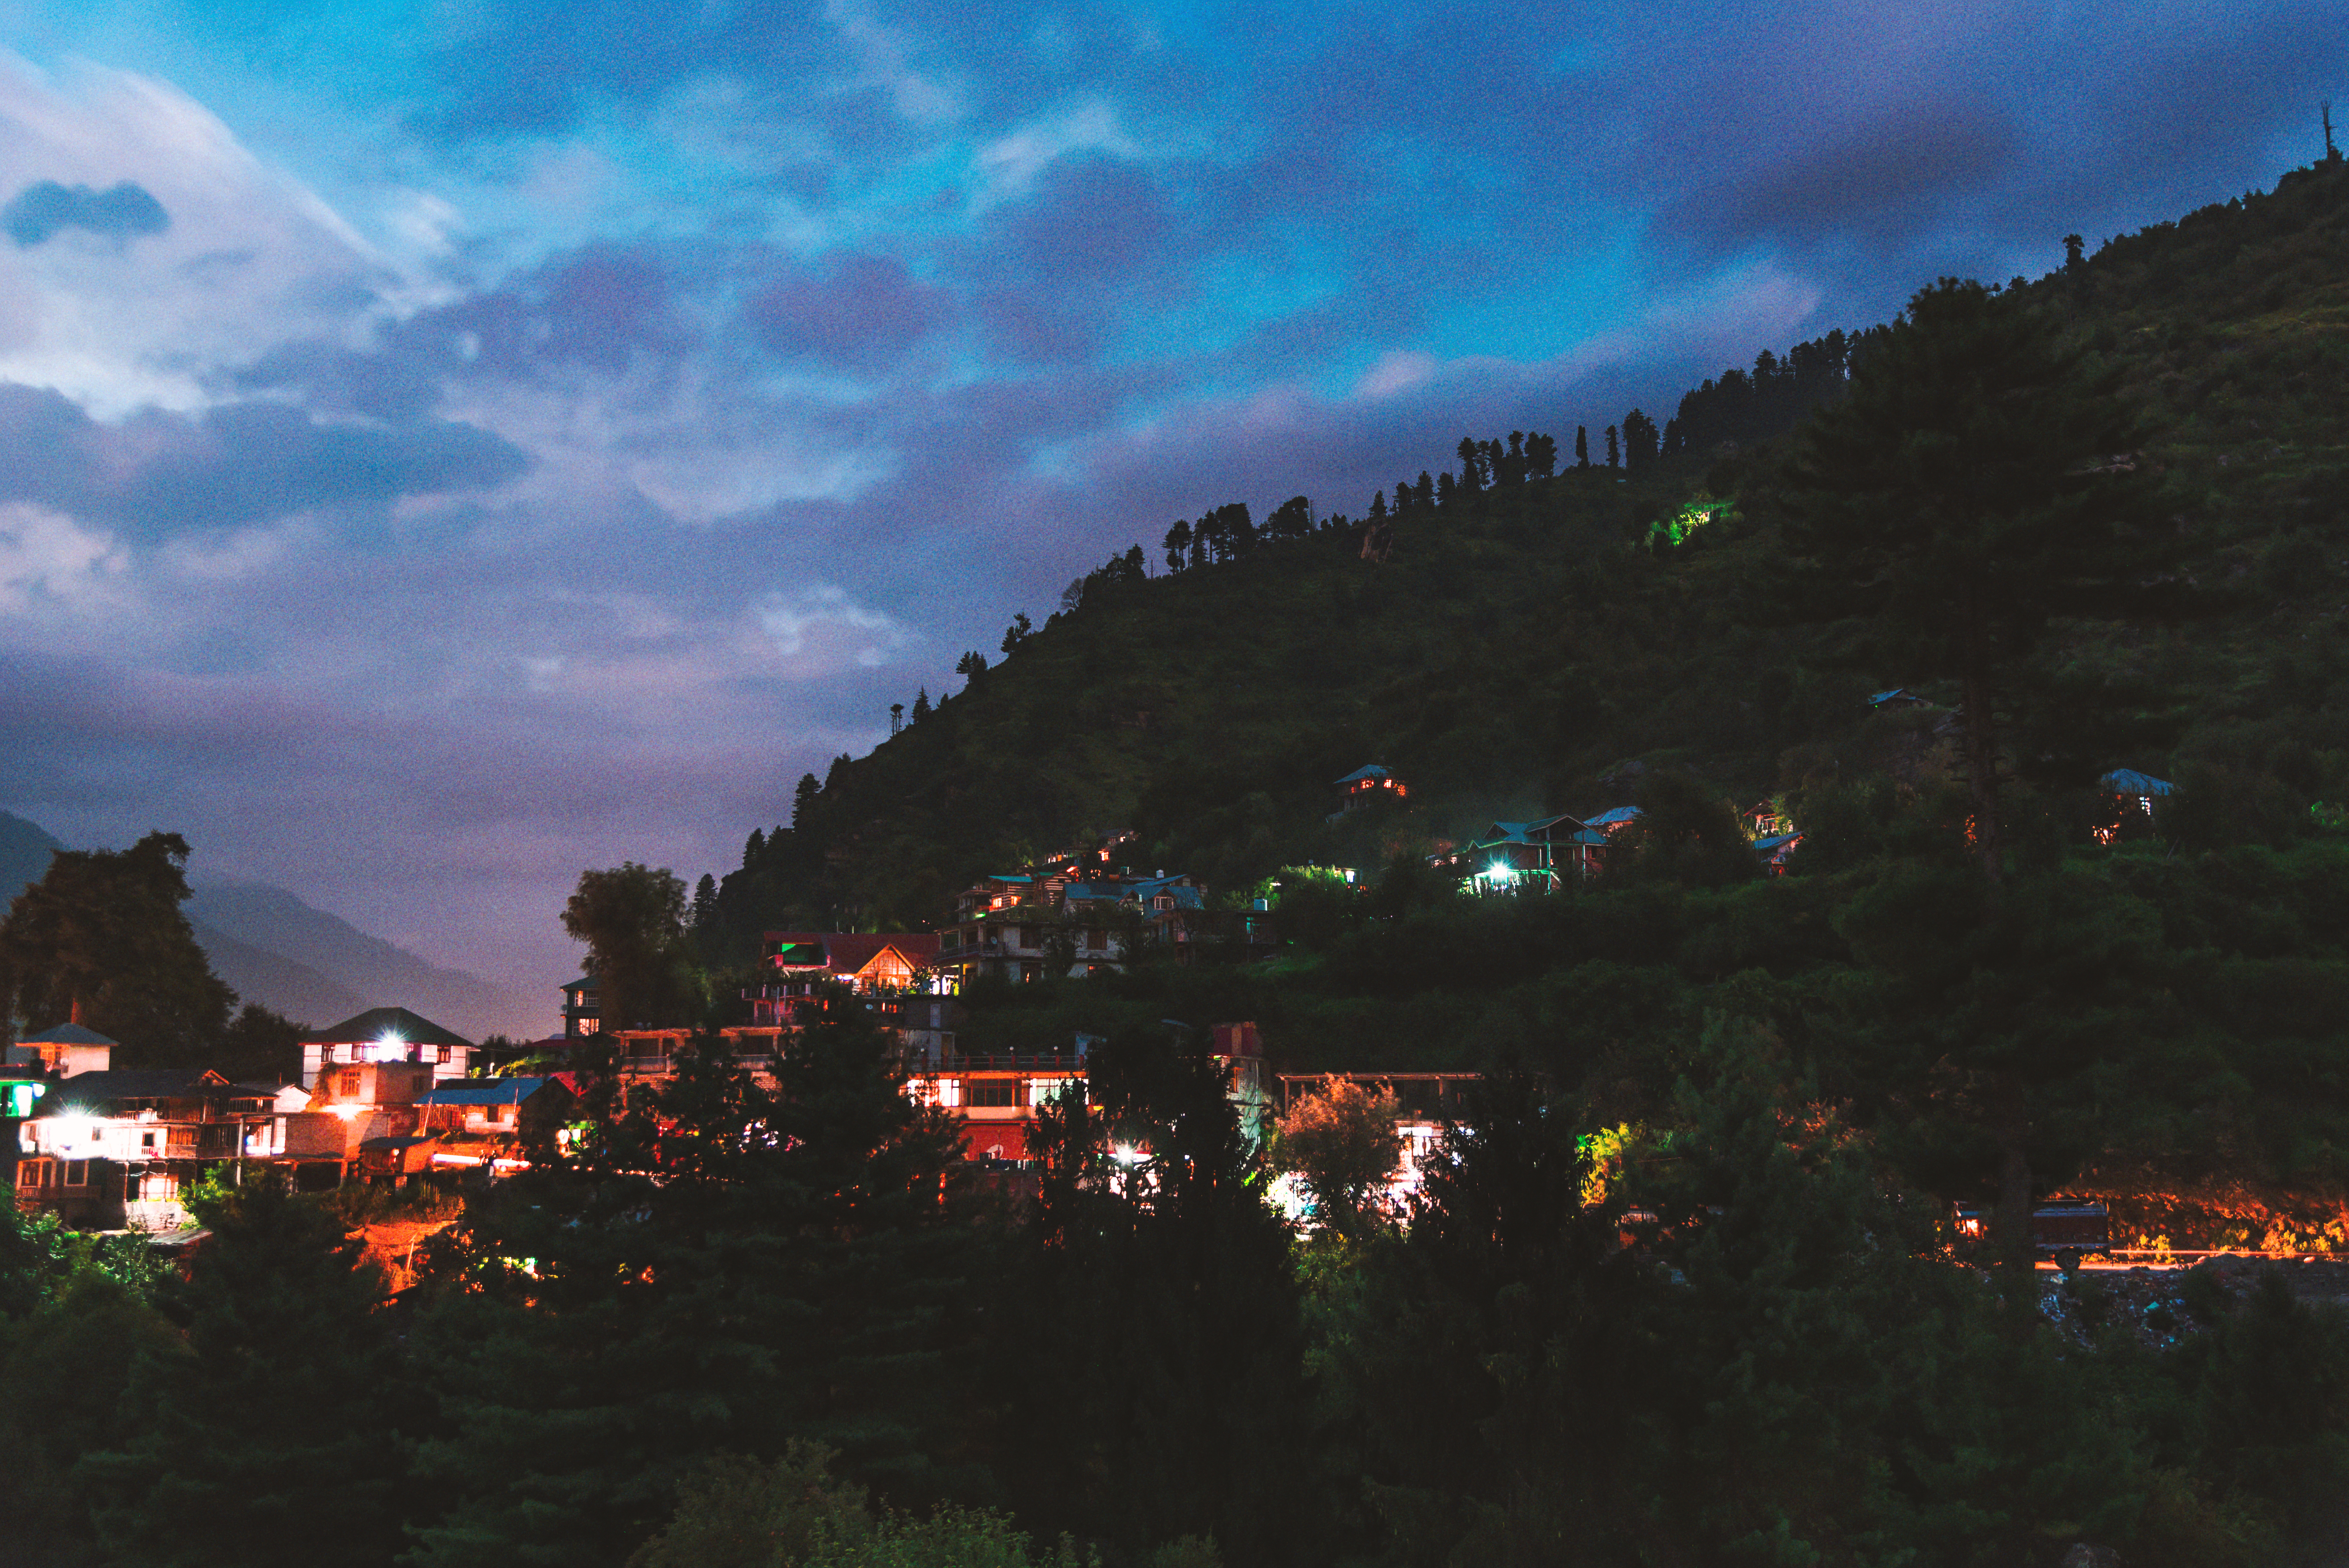 Light Filled Night Photography Of A Himalayan Village